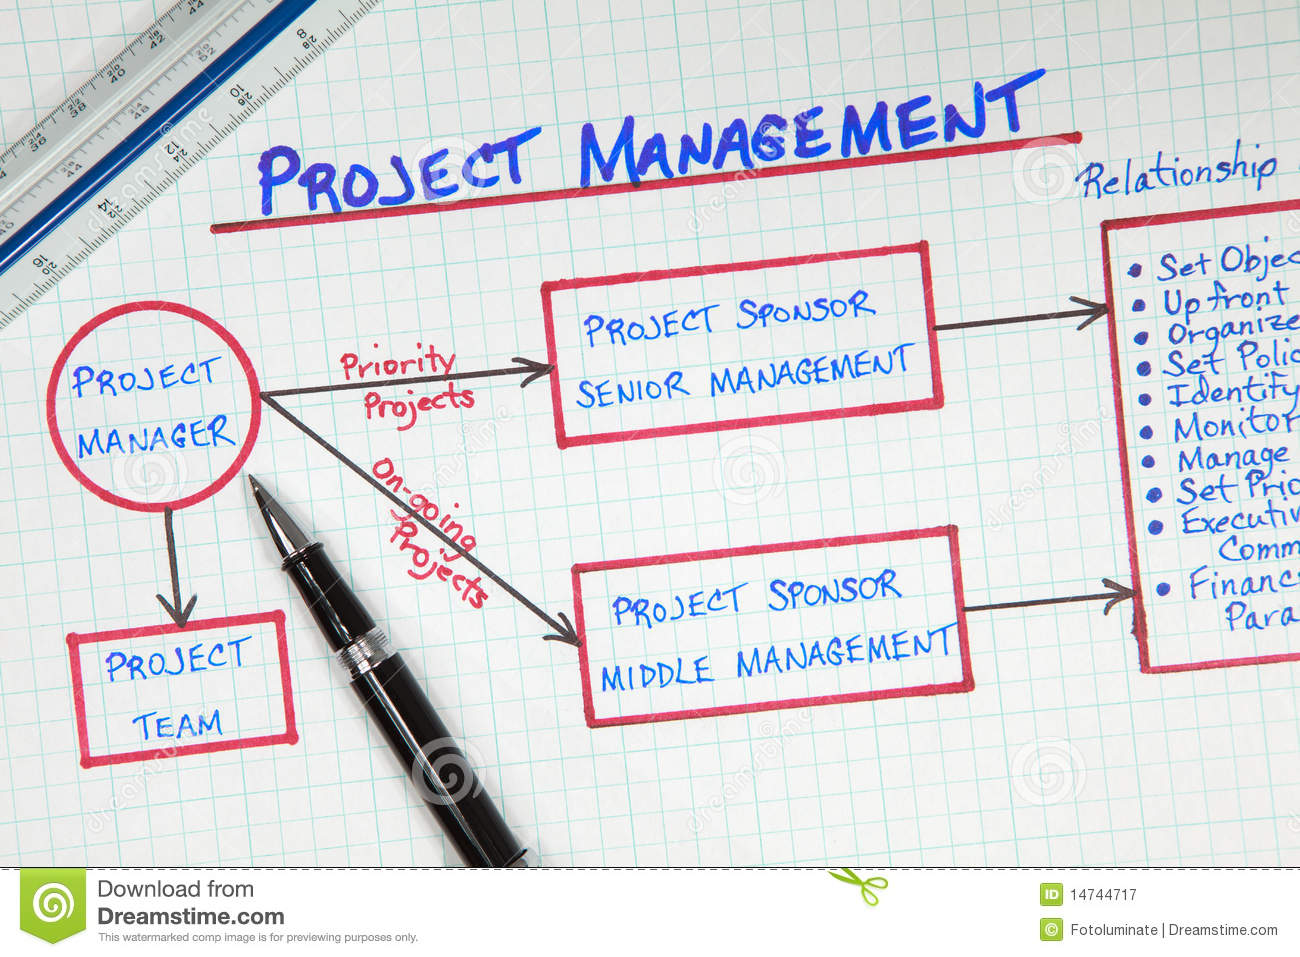 project management office structure diagram 2005 jeep grand cherokee parts business stock image of